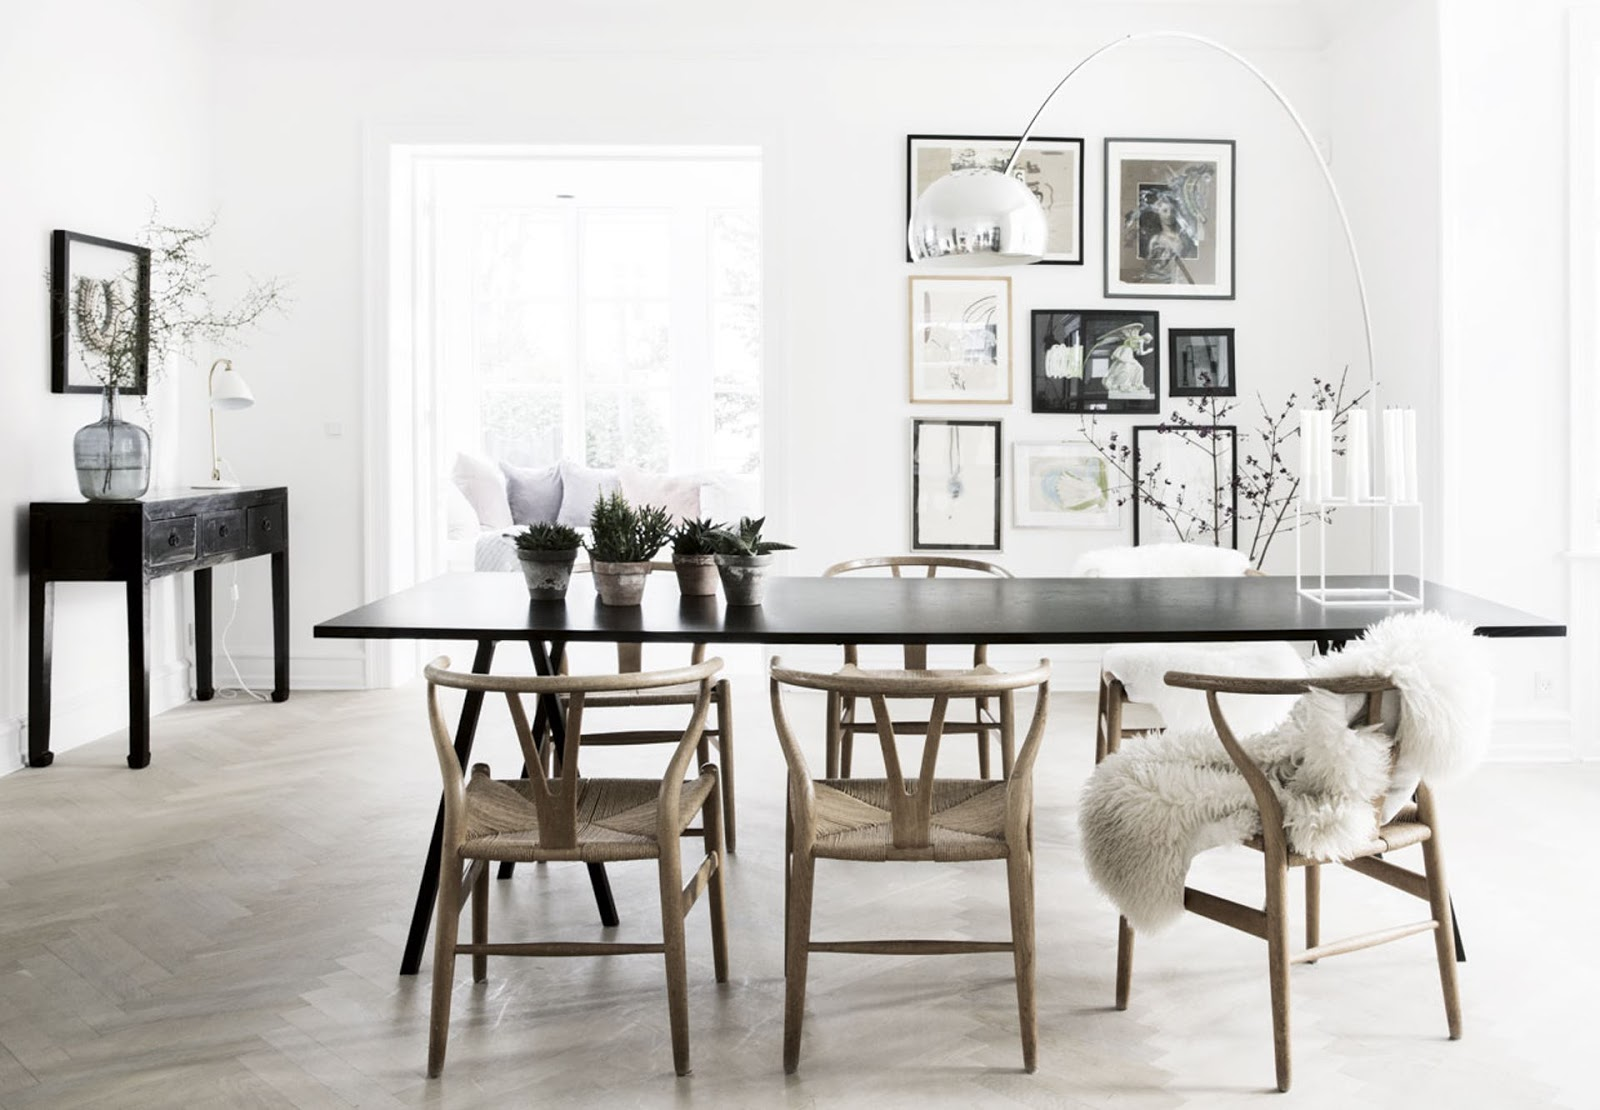 Bright scandinavian interior in nordic villa with hans wegners chairs and black furniture